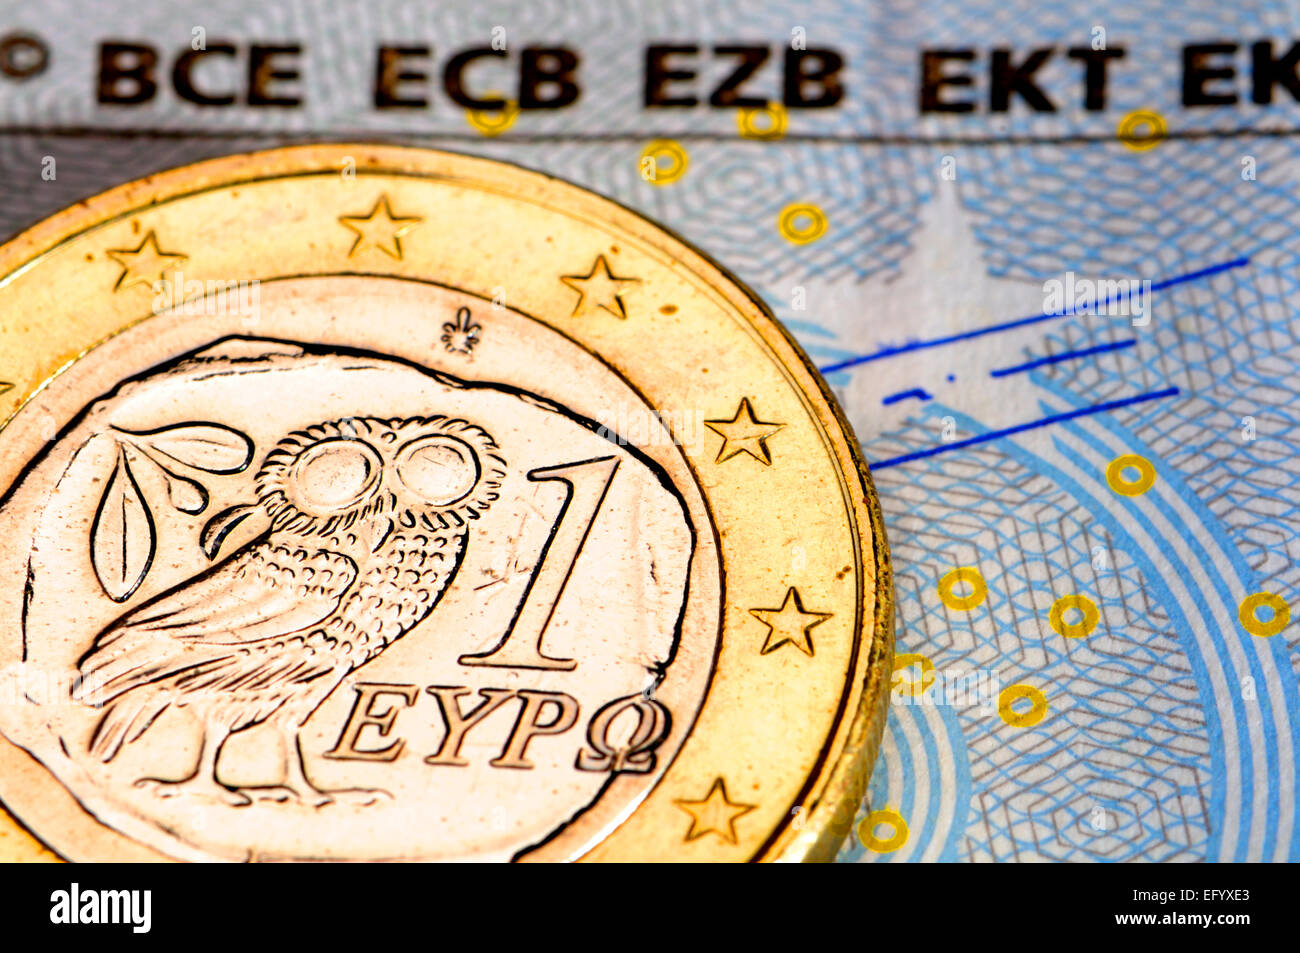 Greek 1 Euro coin on a €5 note - Stock Image